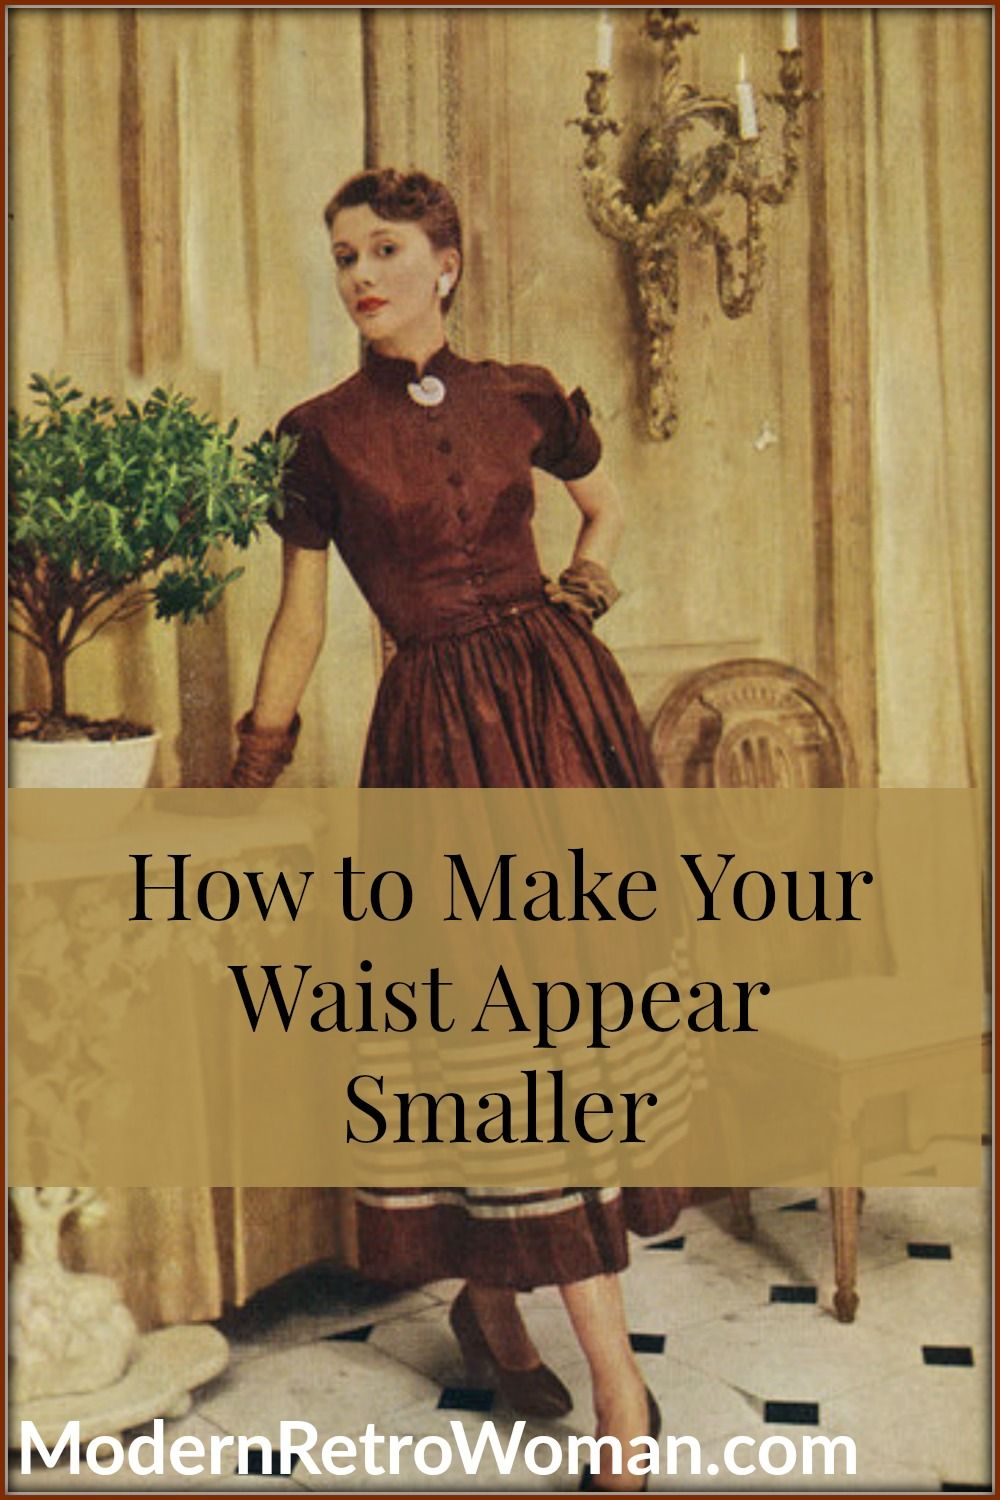 How to make your waist appear smaller than it is fit